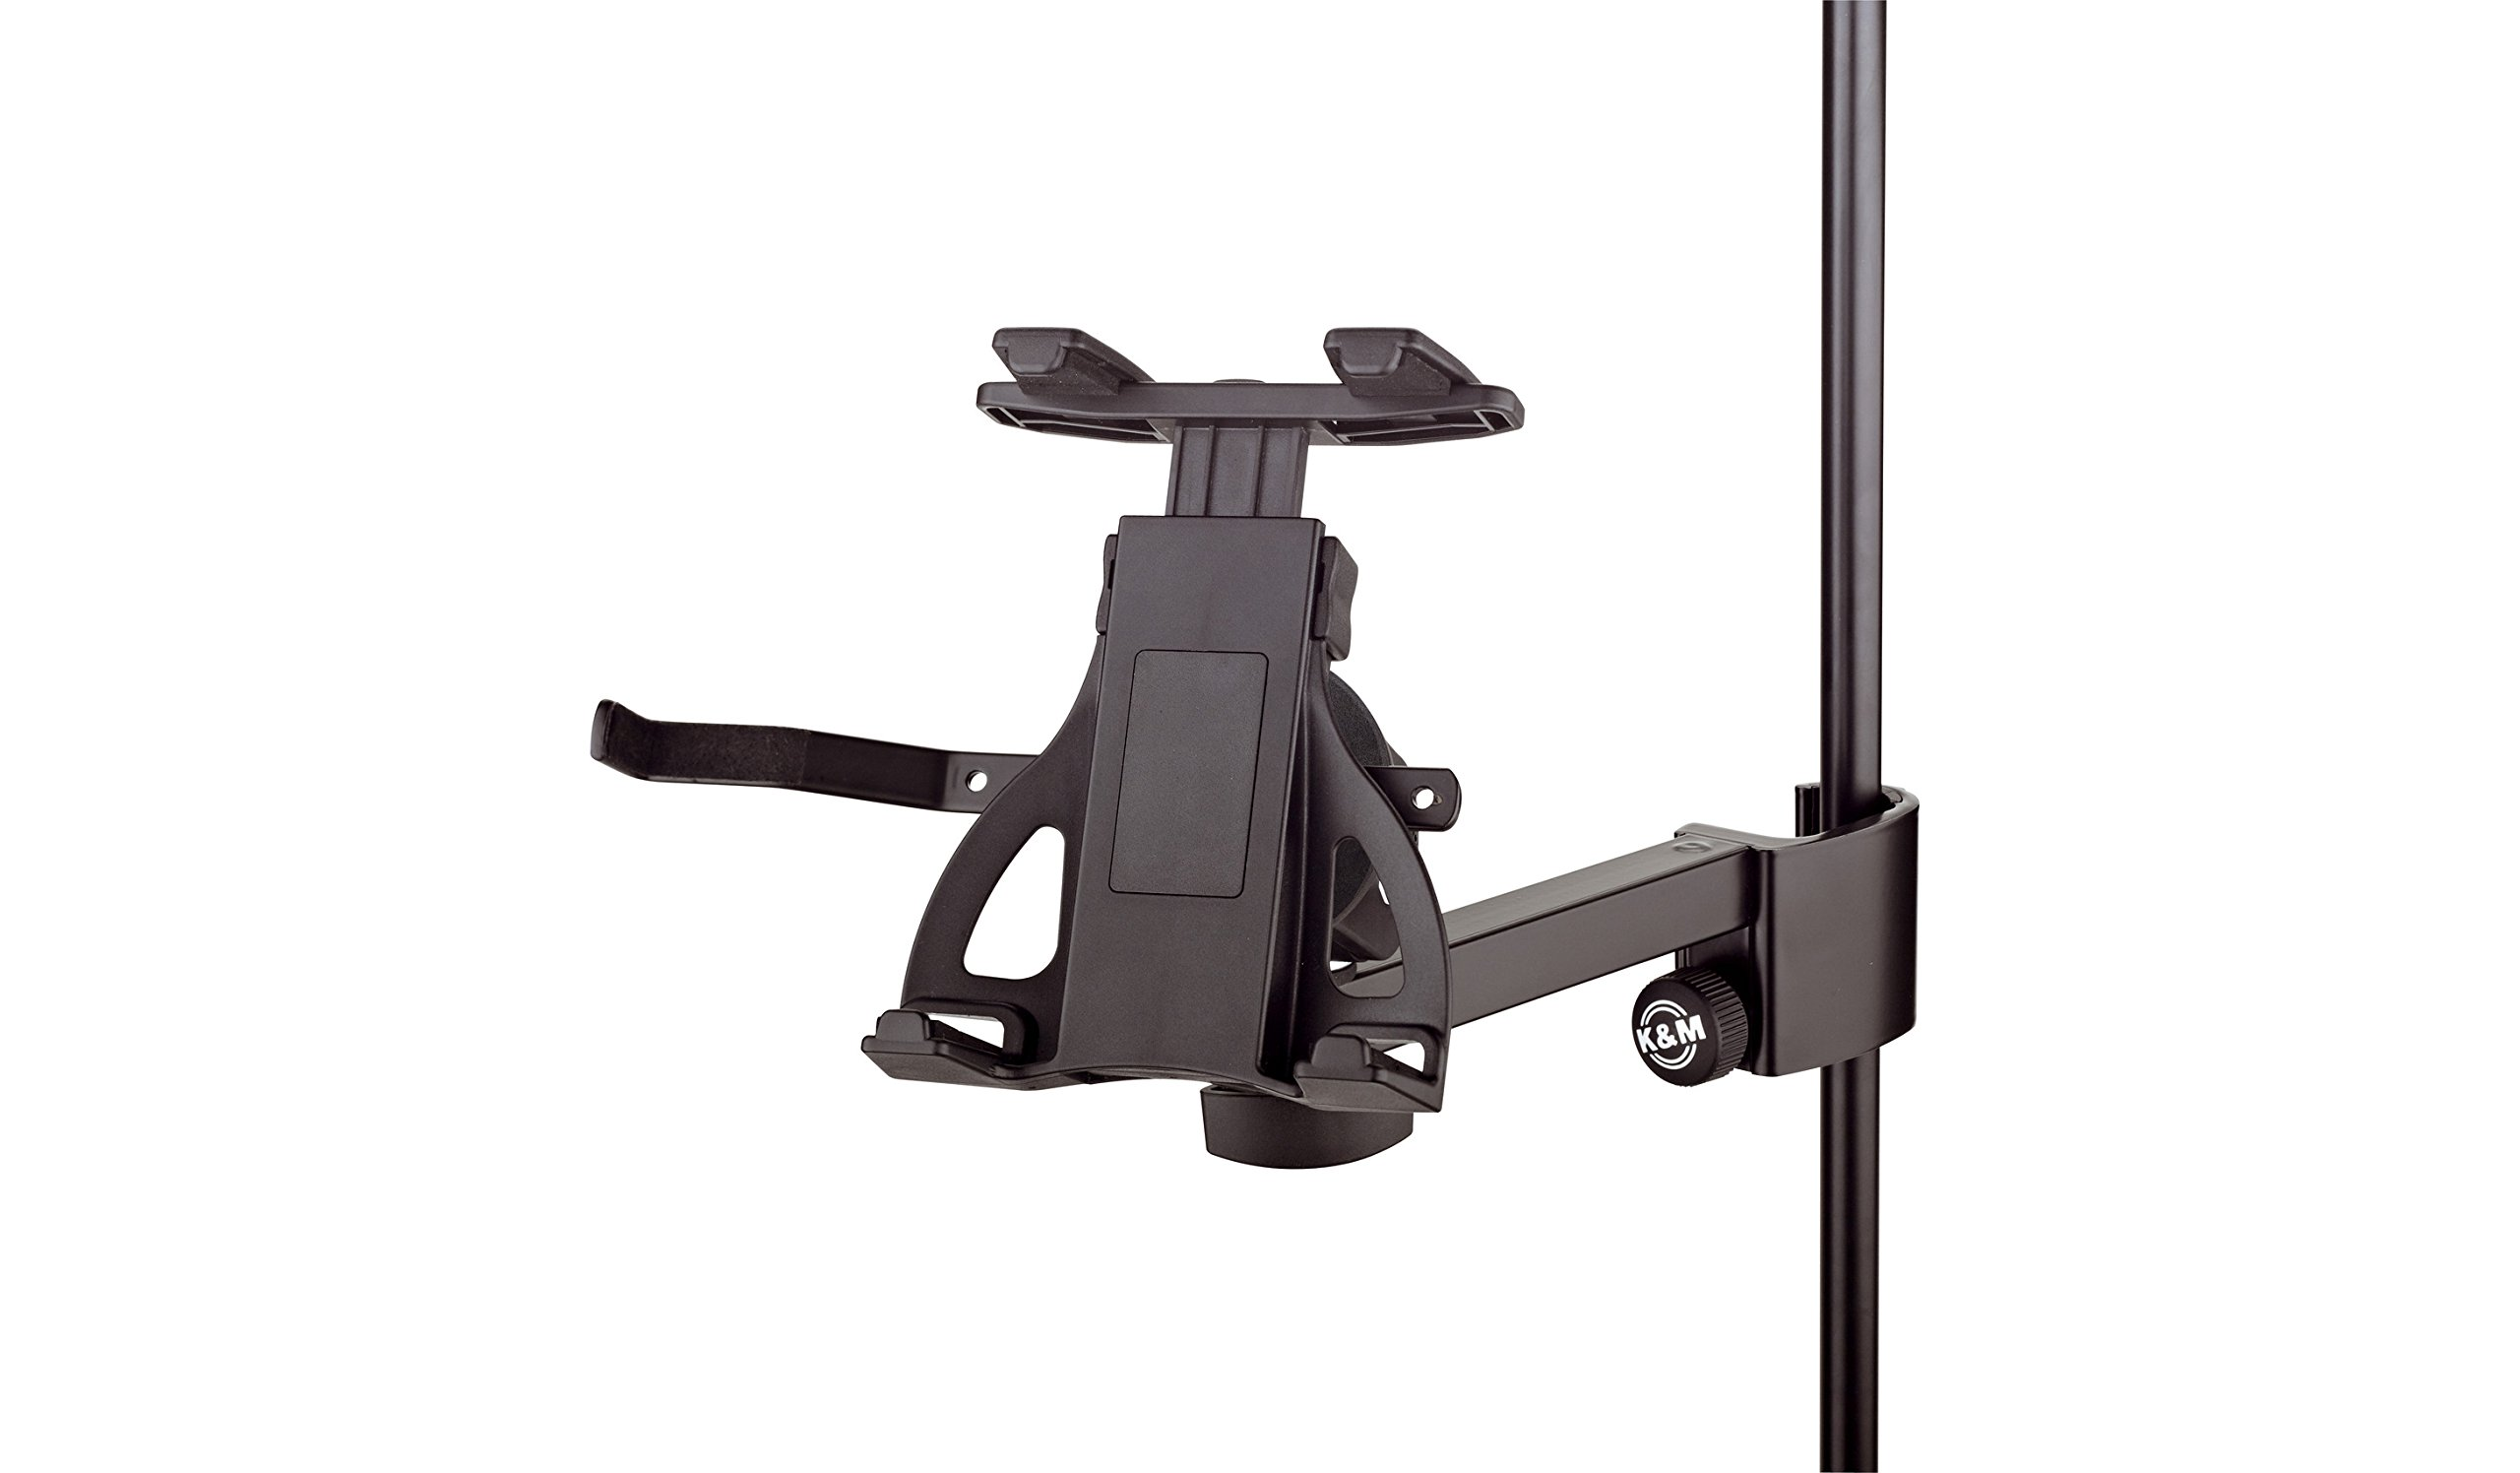 K&M Stands 19740 Universal Tablet Holder-Clamp-on